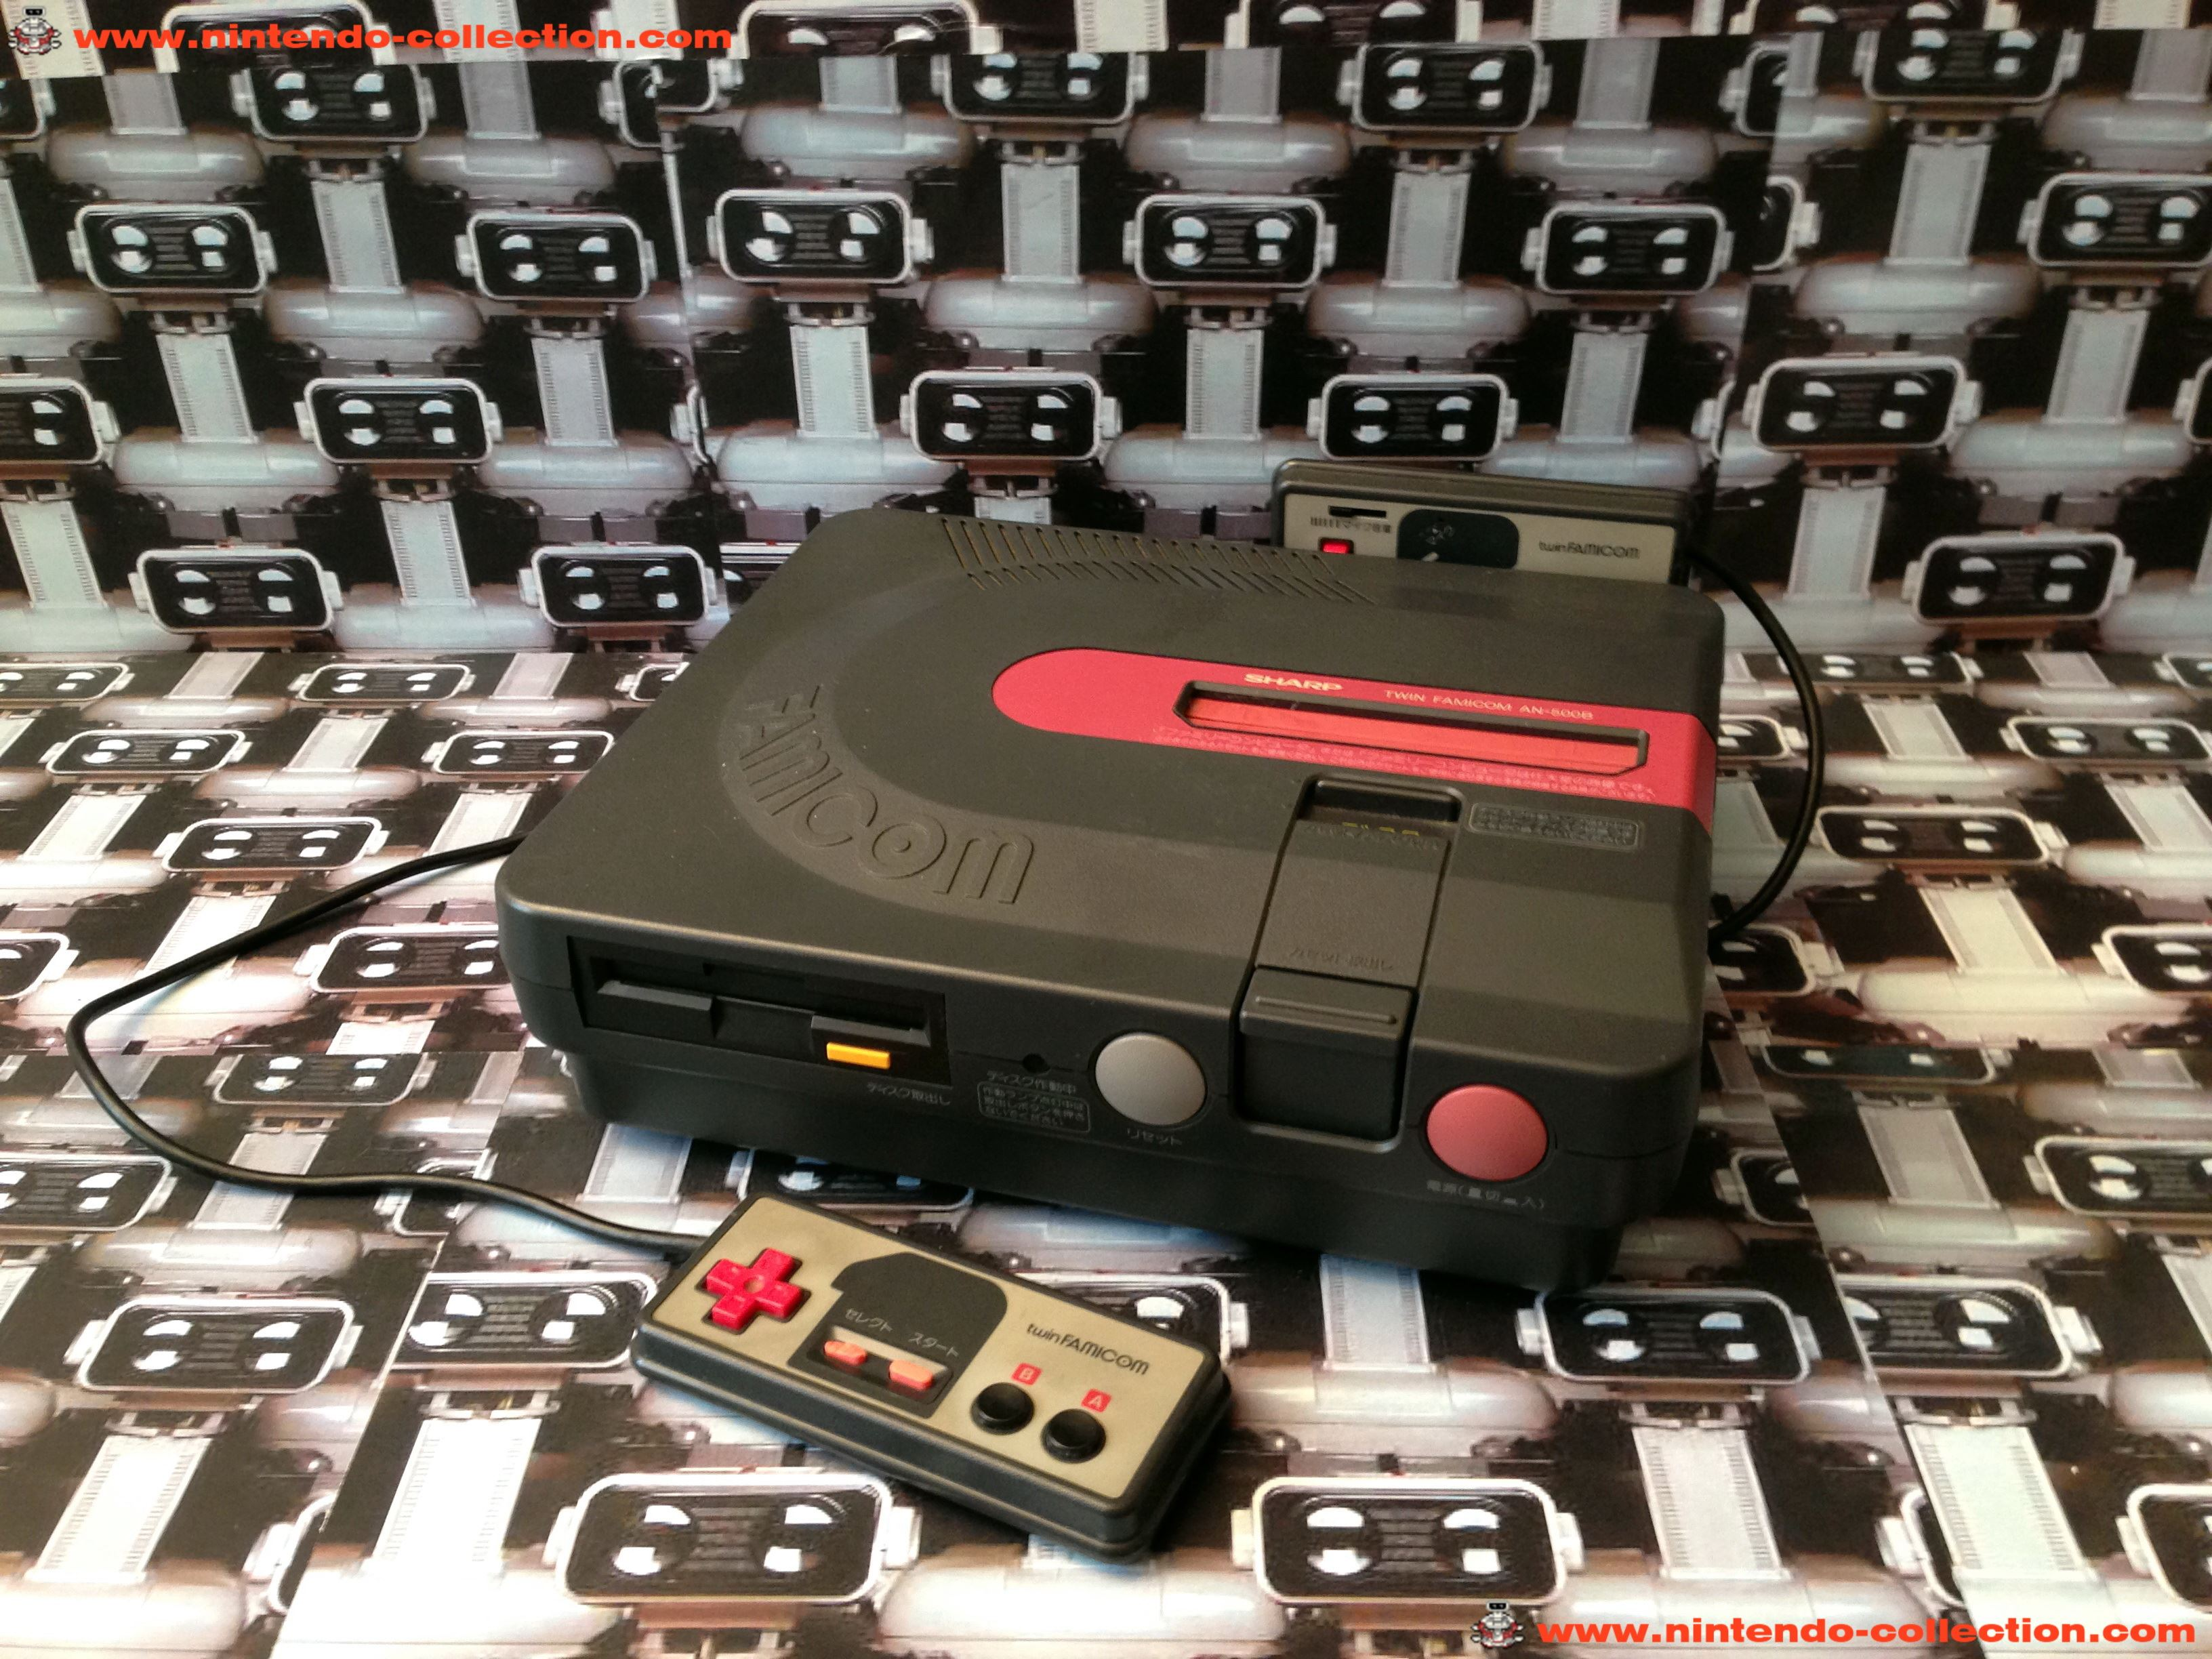 www.nintendo-collection.com - Sharp Twin Famicom Black